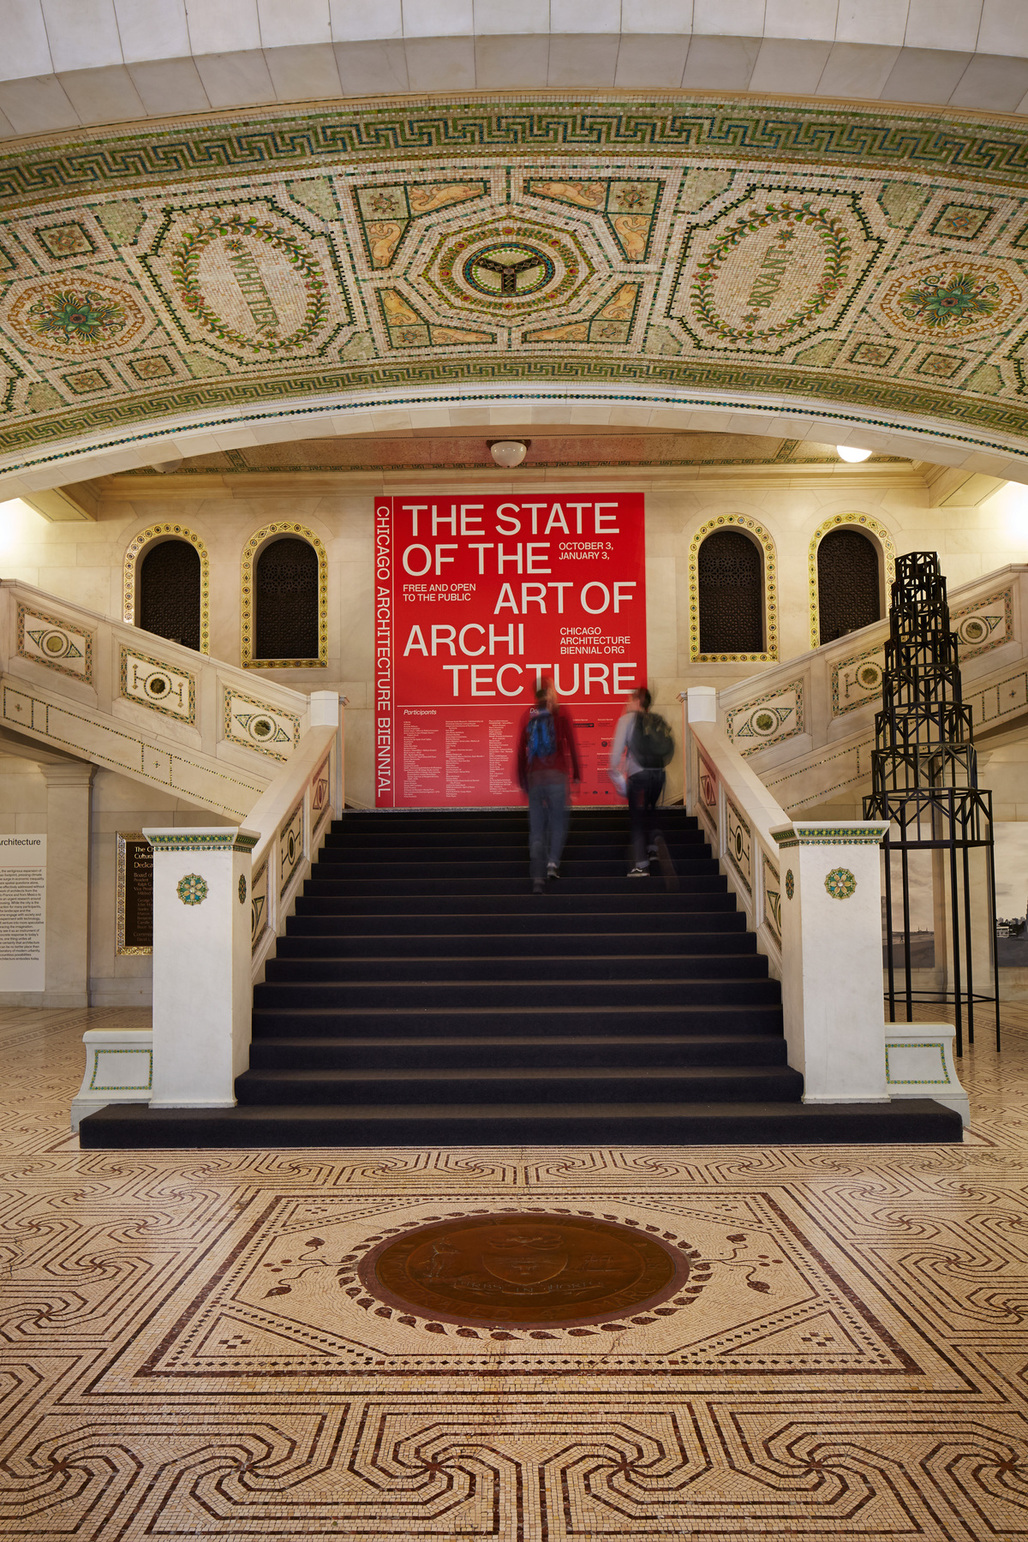 Entrance to the 2015 Biennial. Photo by Steve Hall, courtesy of the Chicago Architecture Biennial.